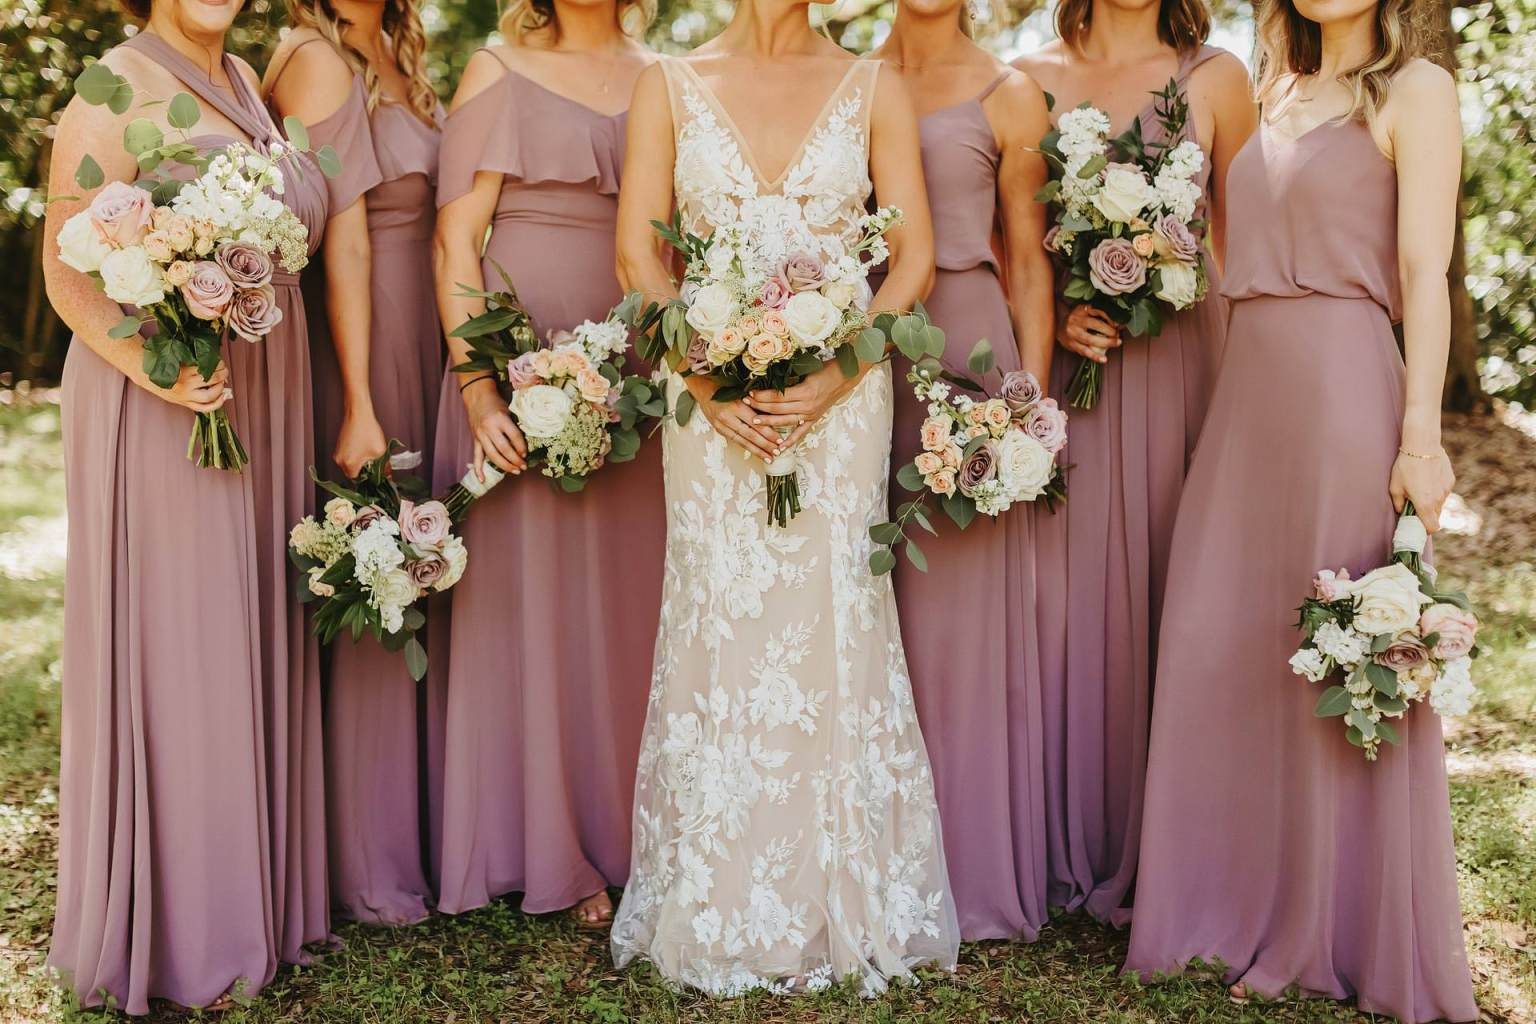 Long Bridesmaids Dresses (photo by twopairphotography)